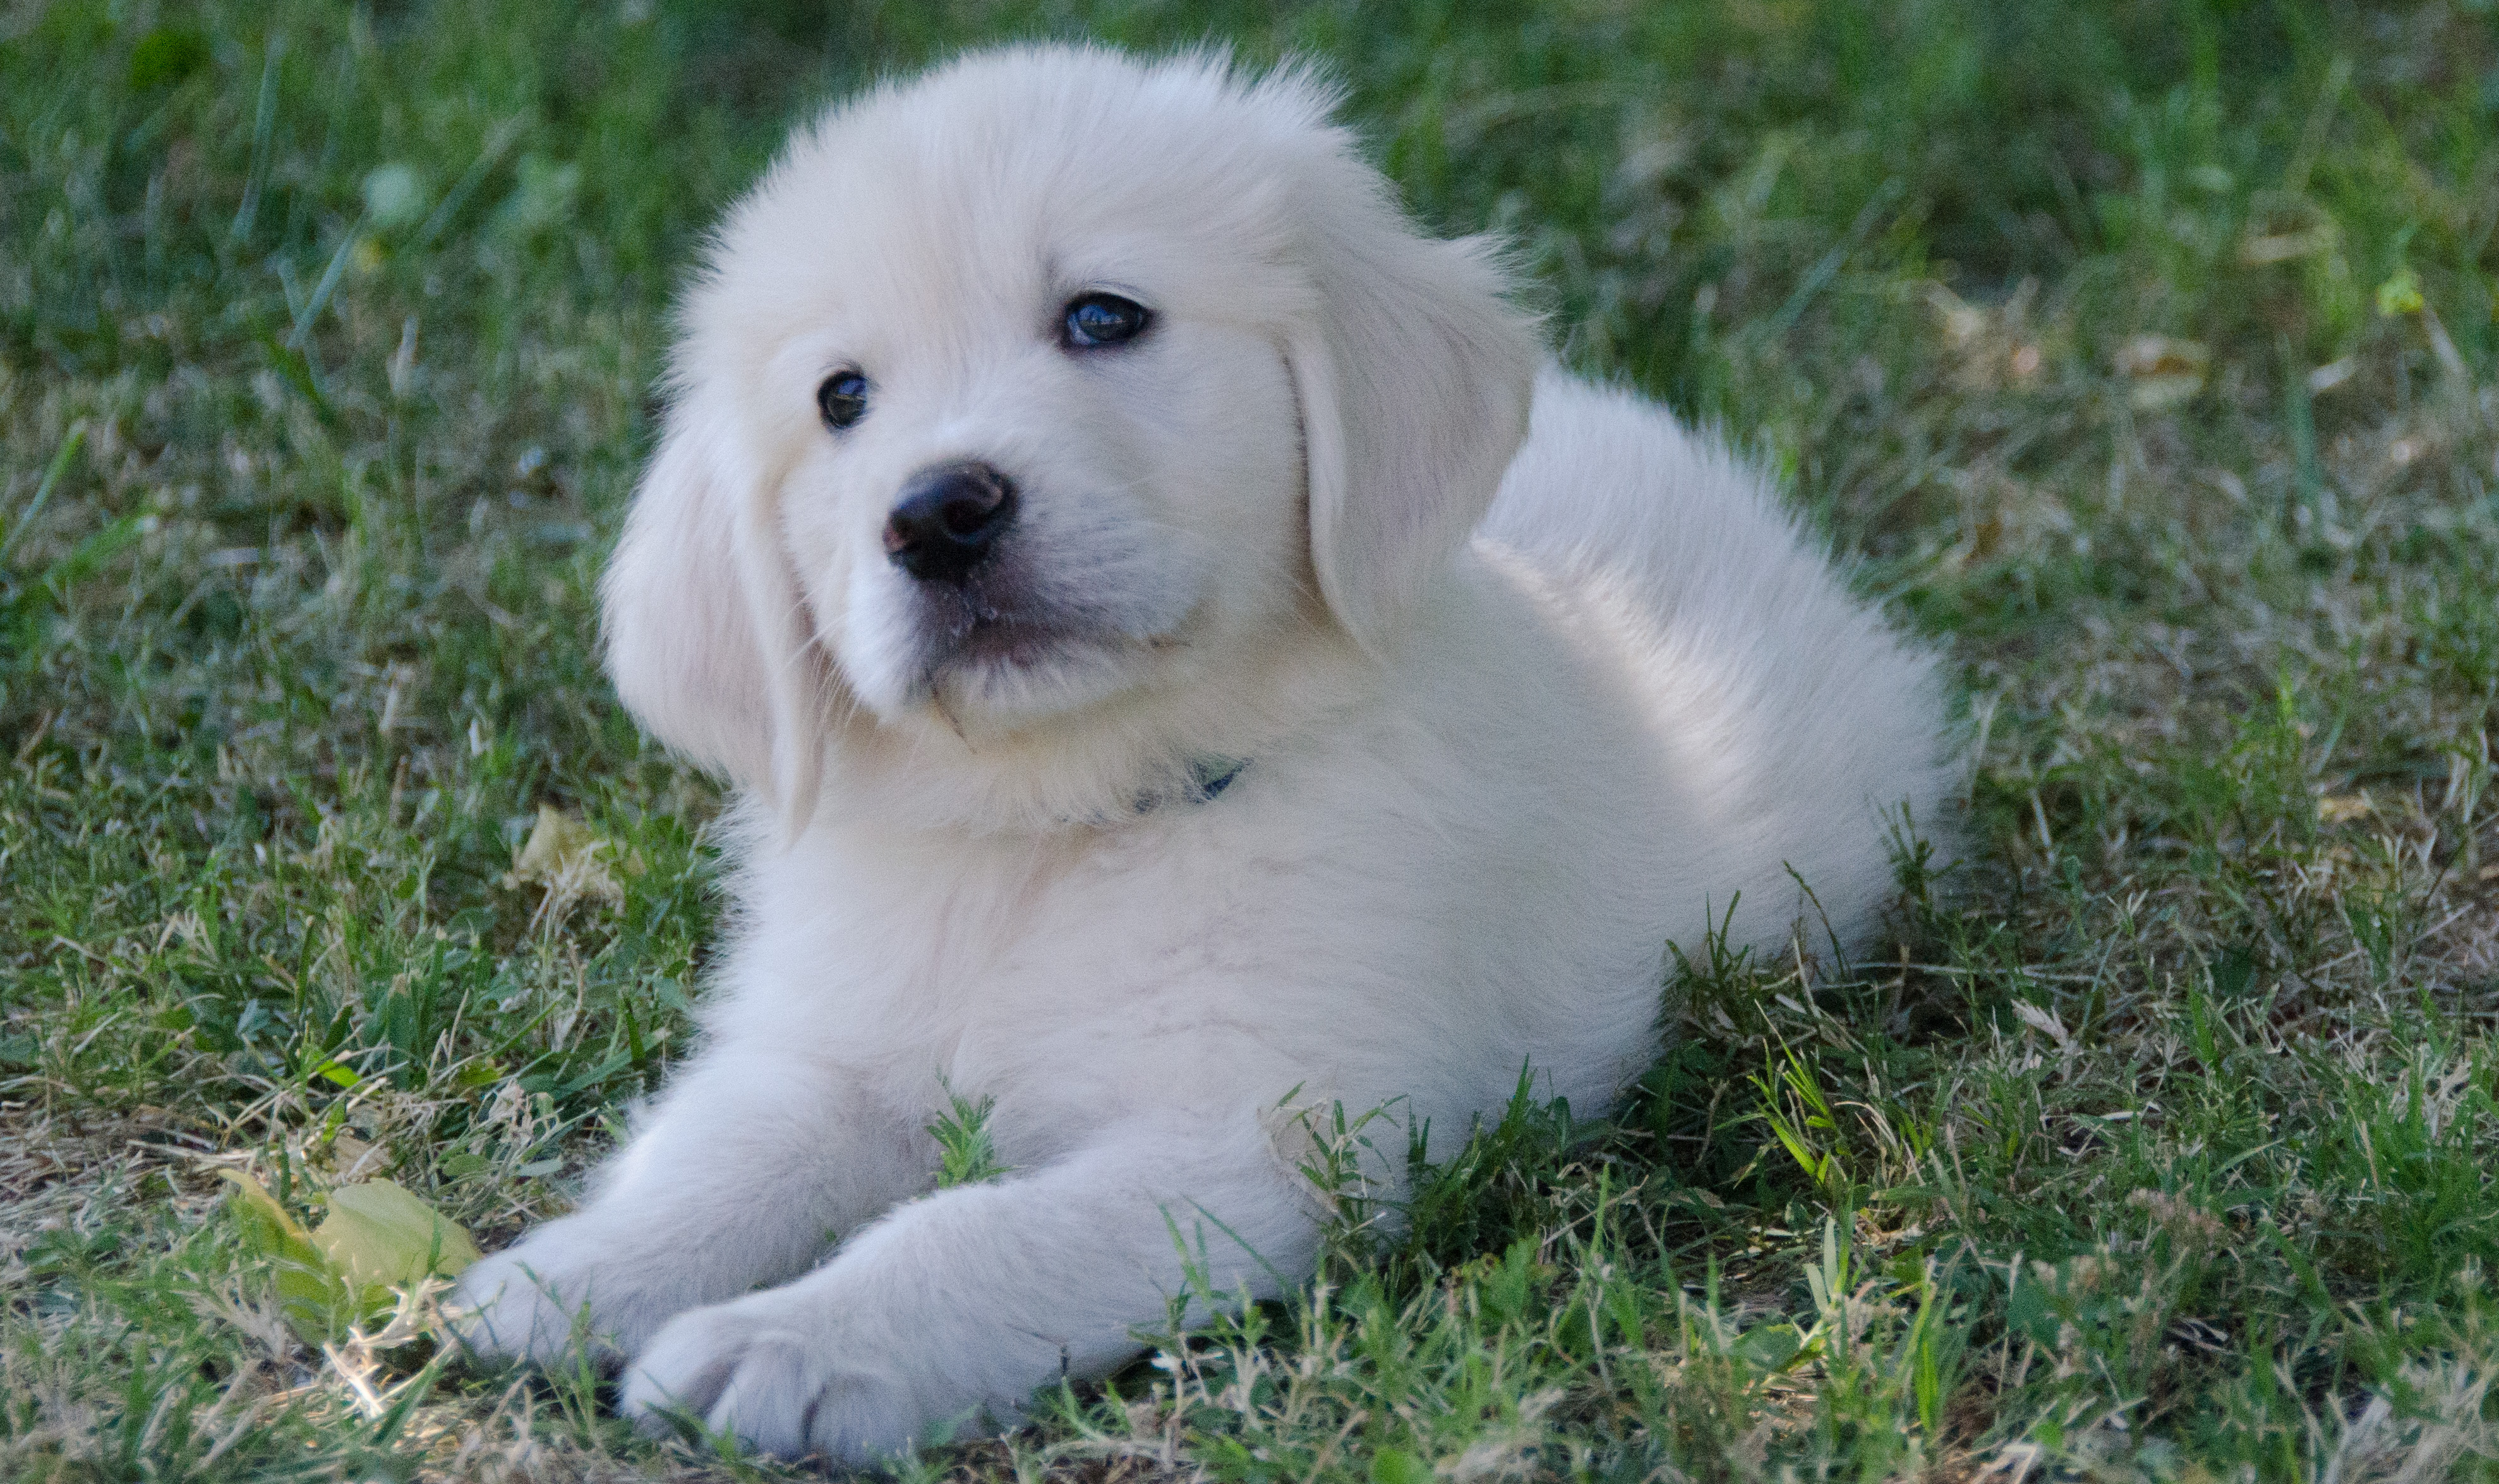 Available Puppies Classic Heritage English Golden Retriever Puppies